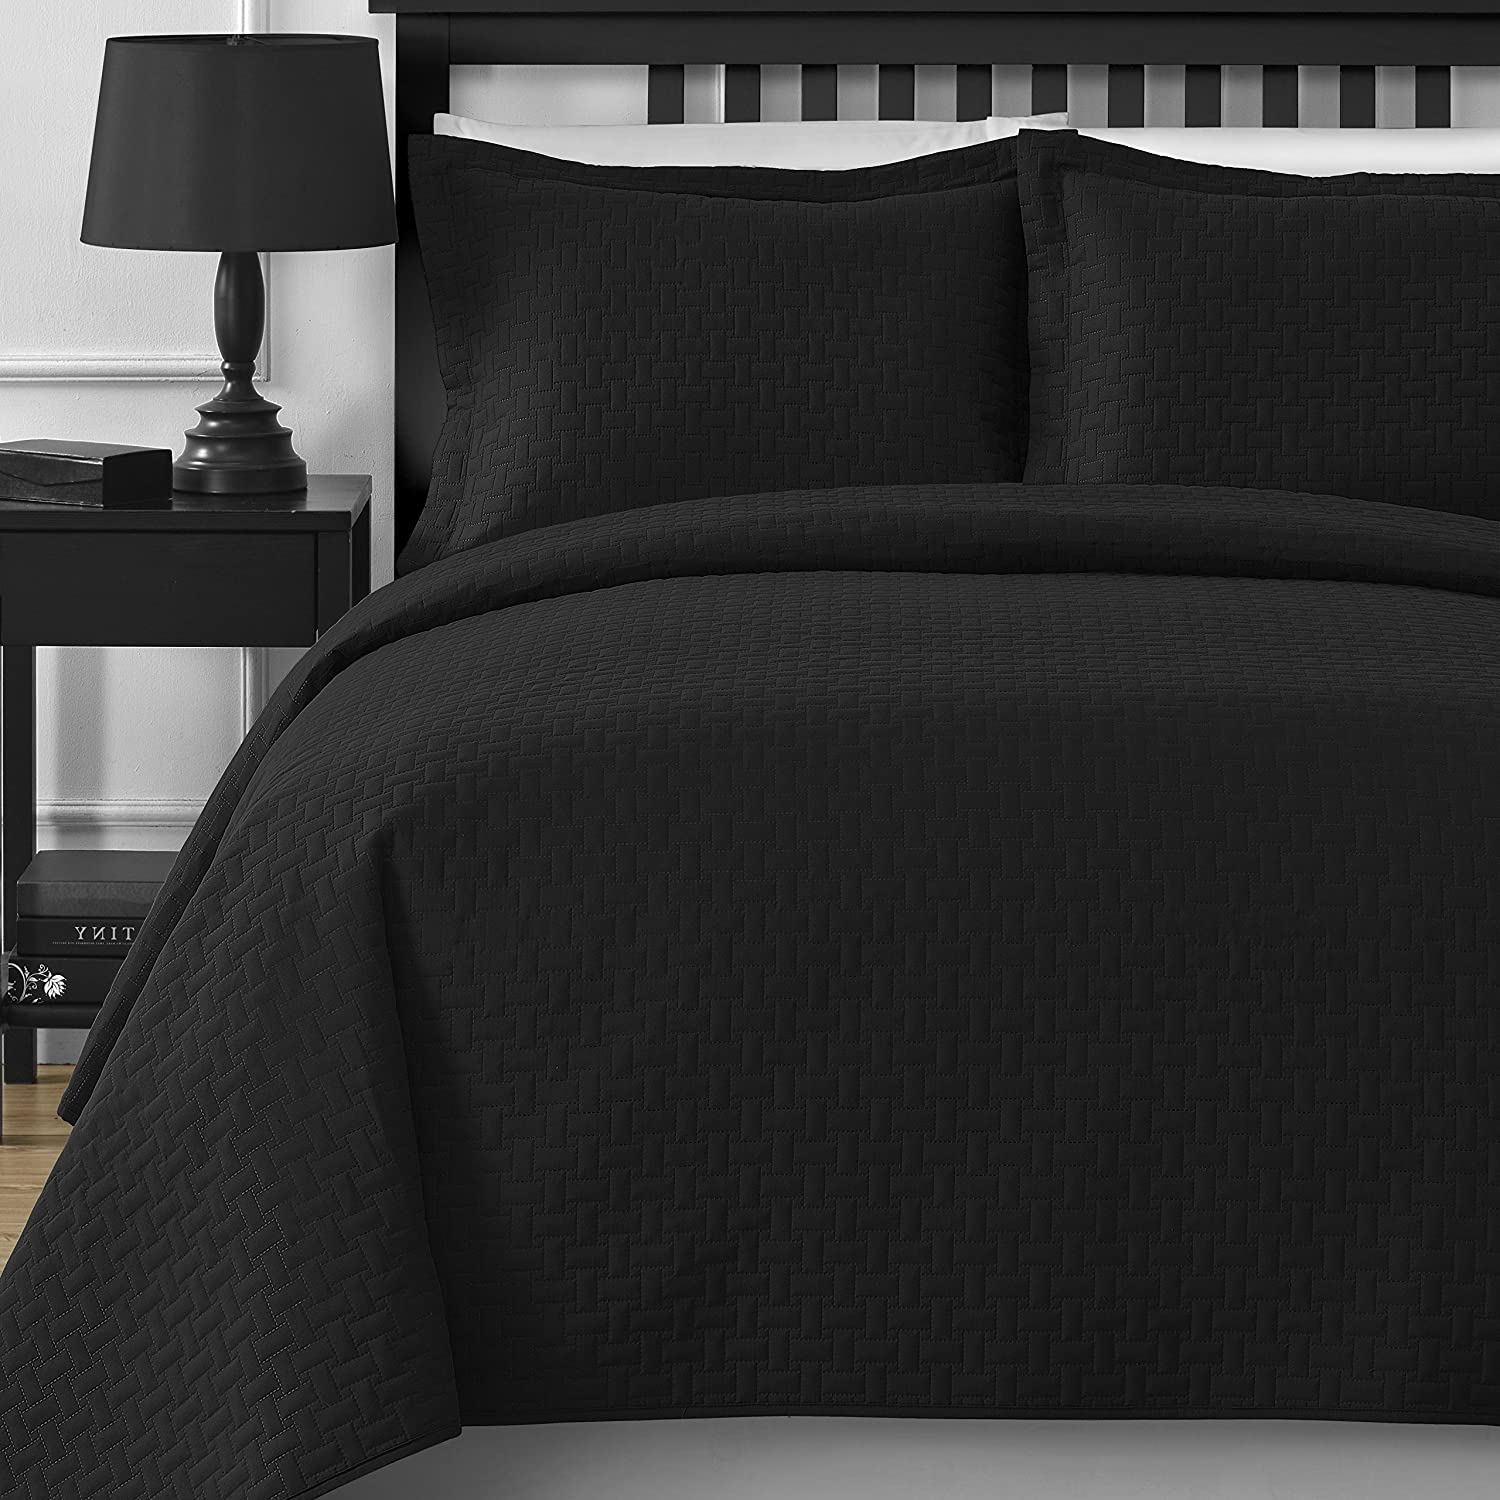 Comfy Bedding Extra Lightweight Modern Wireless Thermal Pressing Frame Quilted 3-Piece Oversize Bedspread Coverlet Set (King/Cali King, Black)